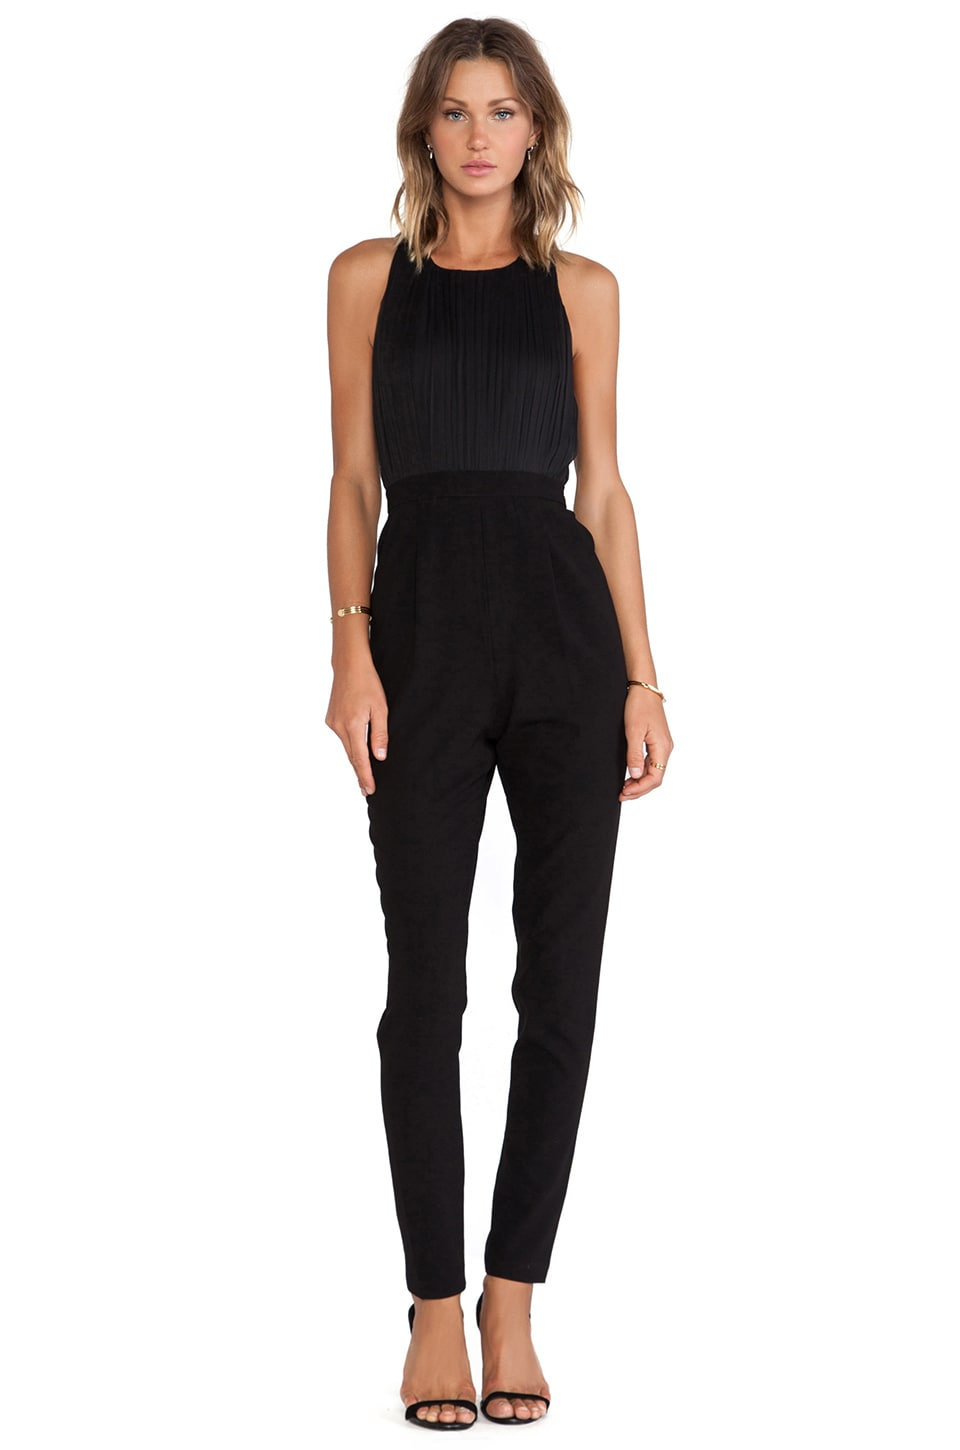 Alice + Olivia Angen T Back Jumpsuit in Black